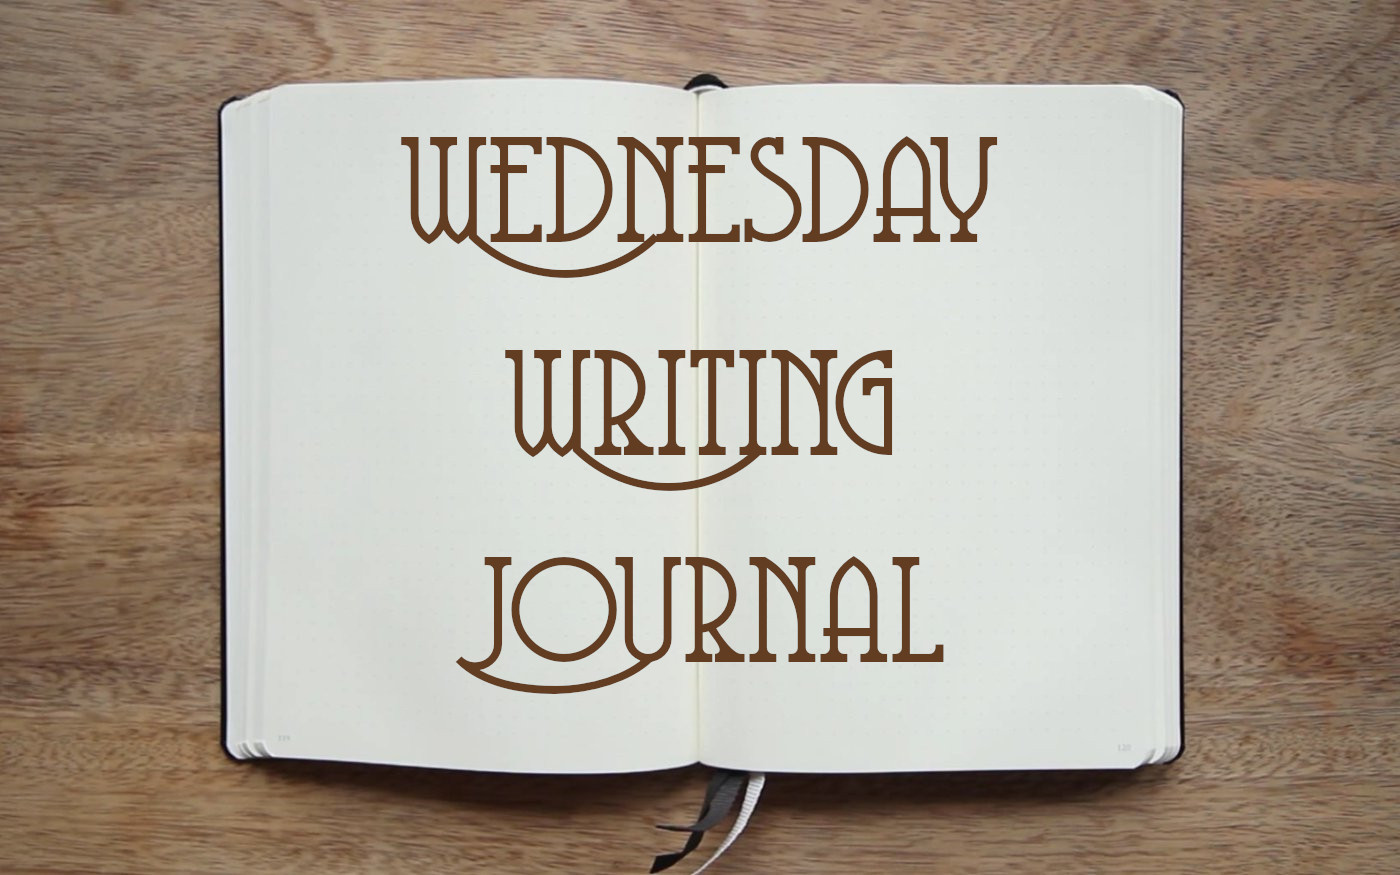 Wednesday Writing Journal: March 18th, 2020